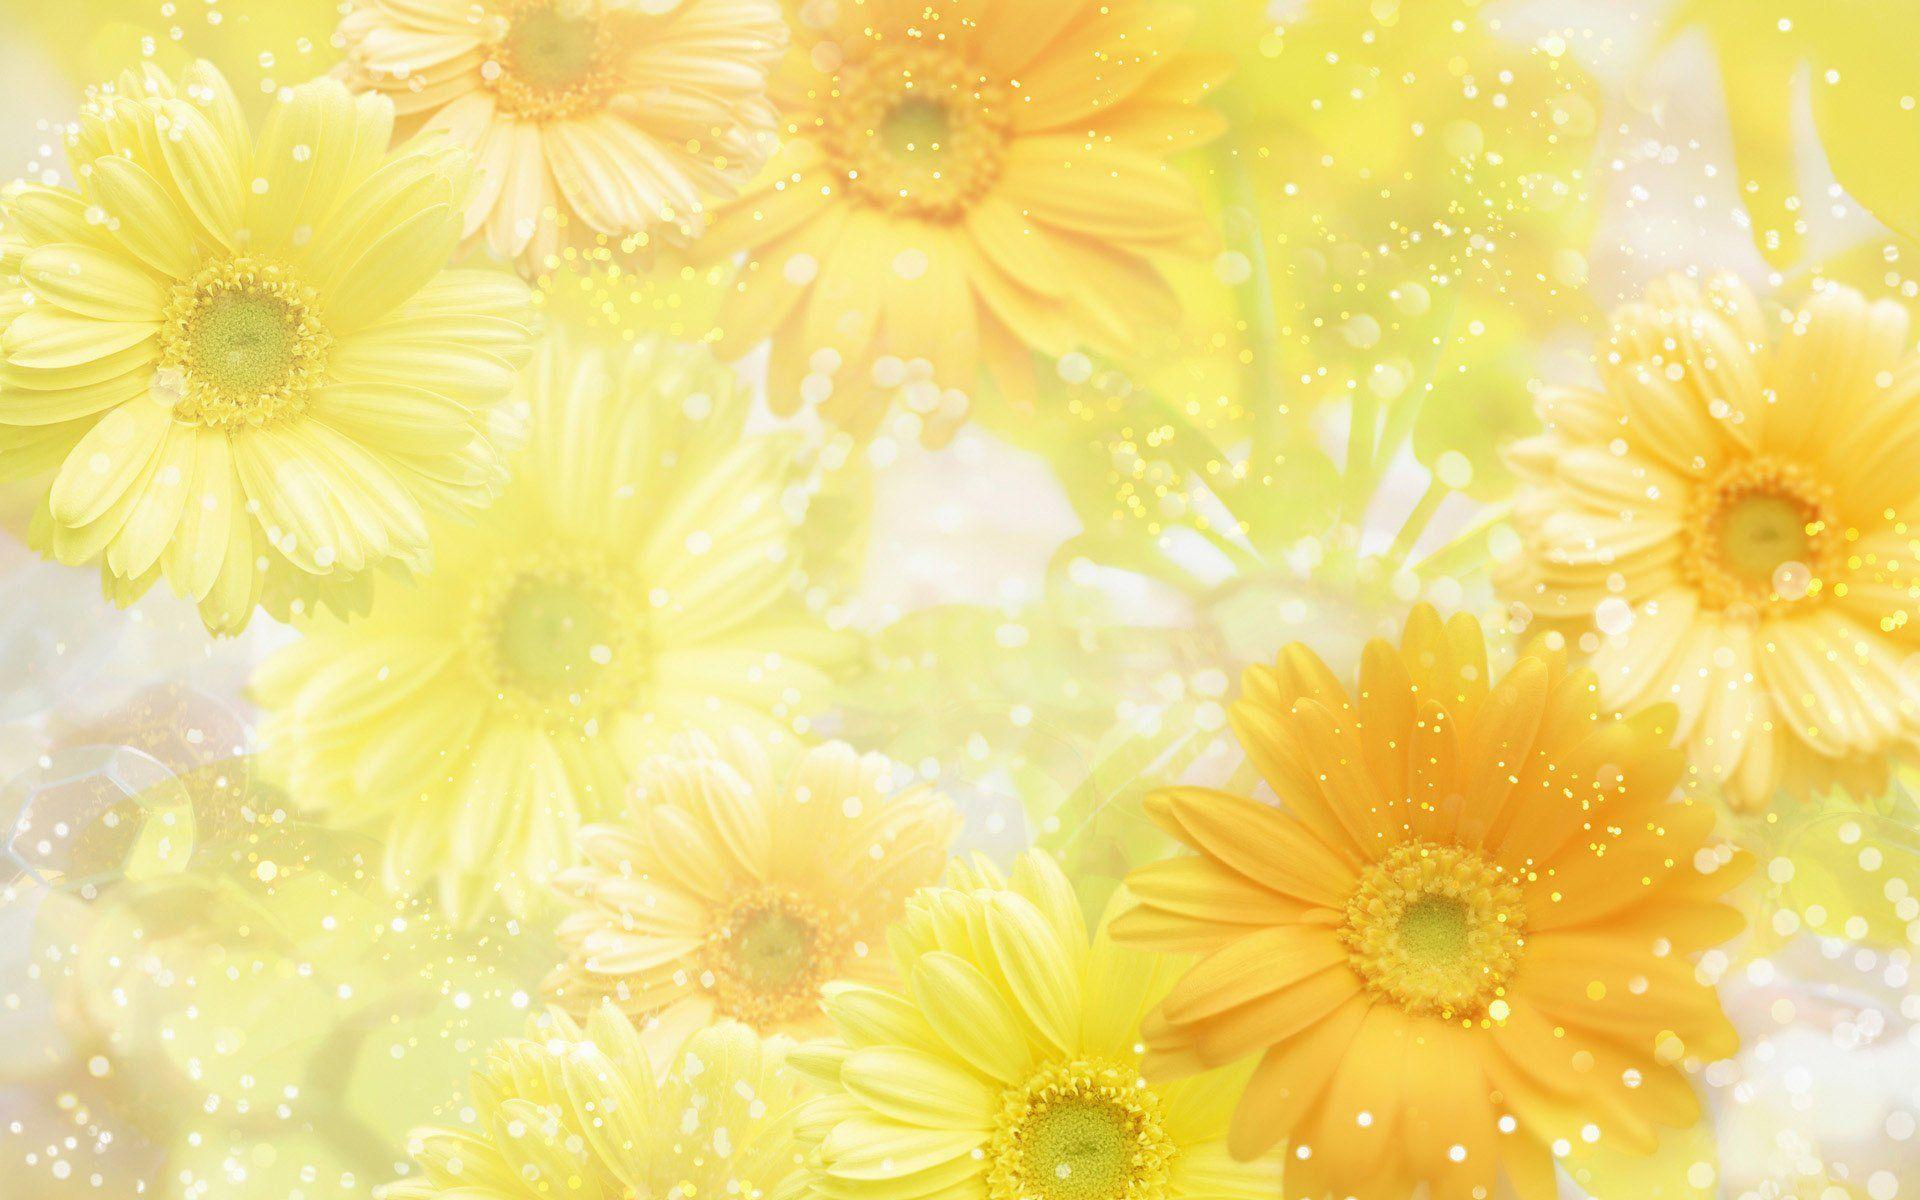 Download These 42 Yellow Wallpapers in High Definition For Free